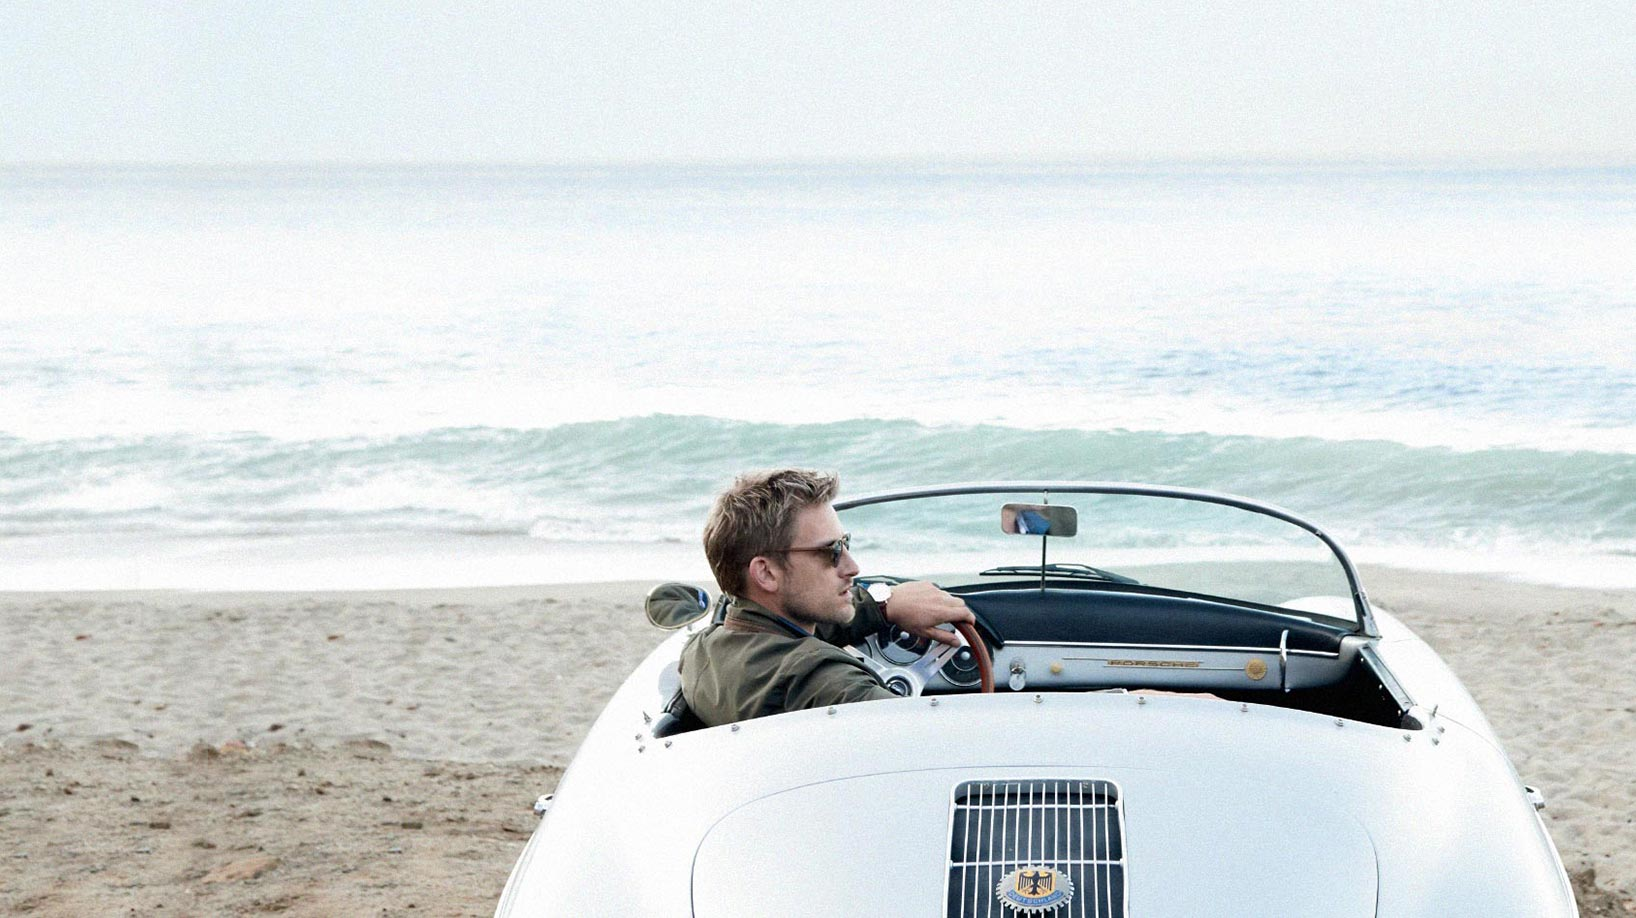 Man in Convertible Car on Beach Wearing Peter Millar Clothing